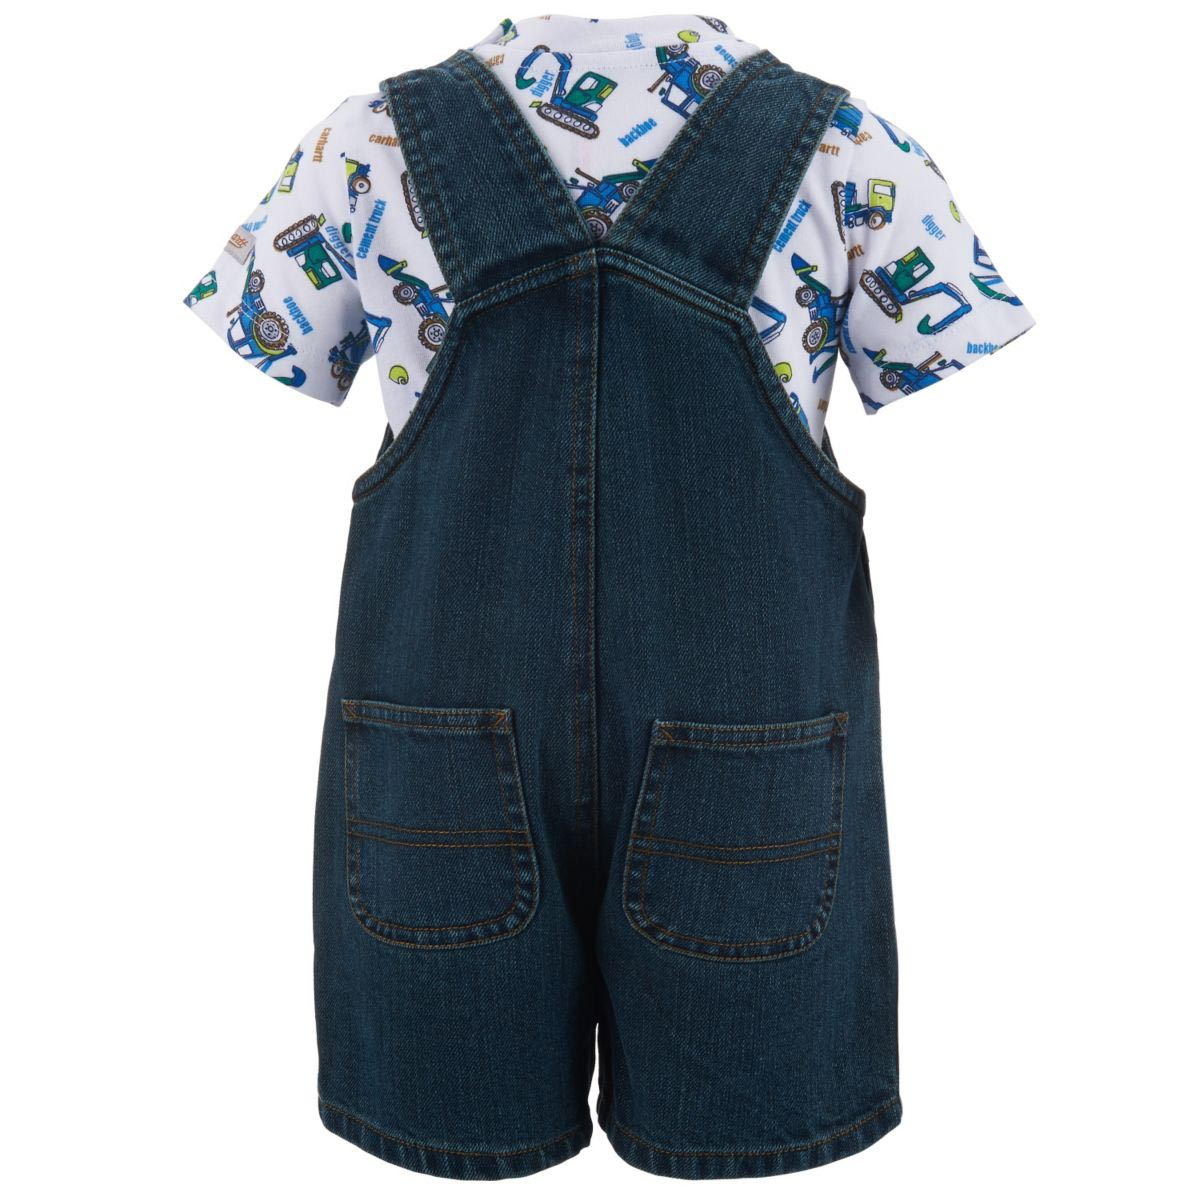 Carhartt Infant Boys' Denim Shortall Set